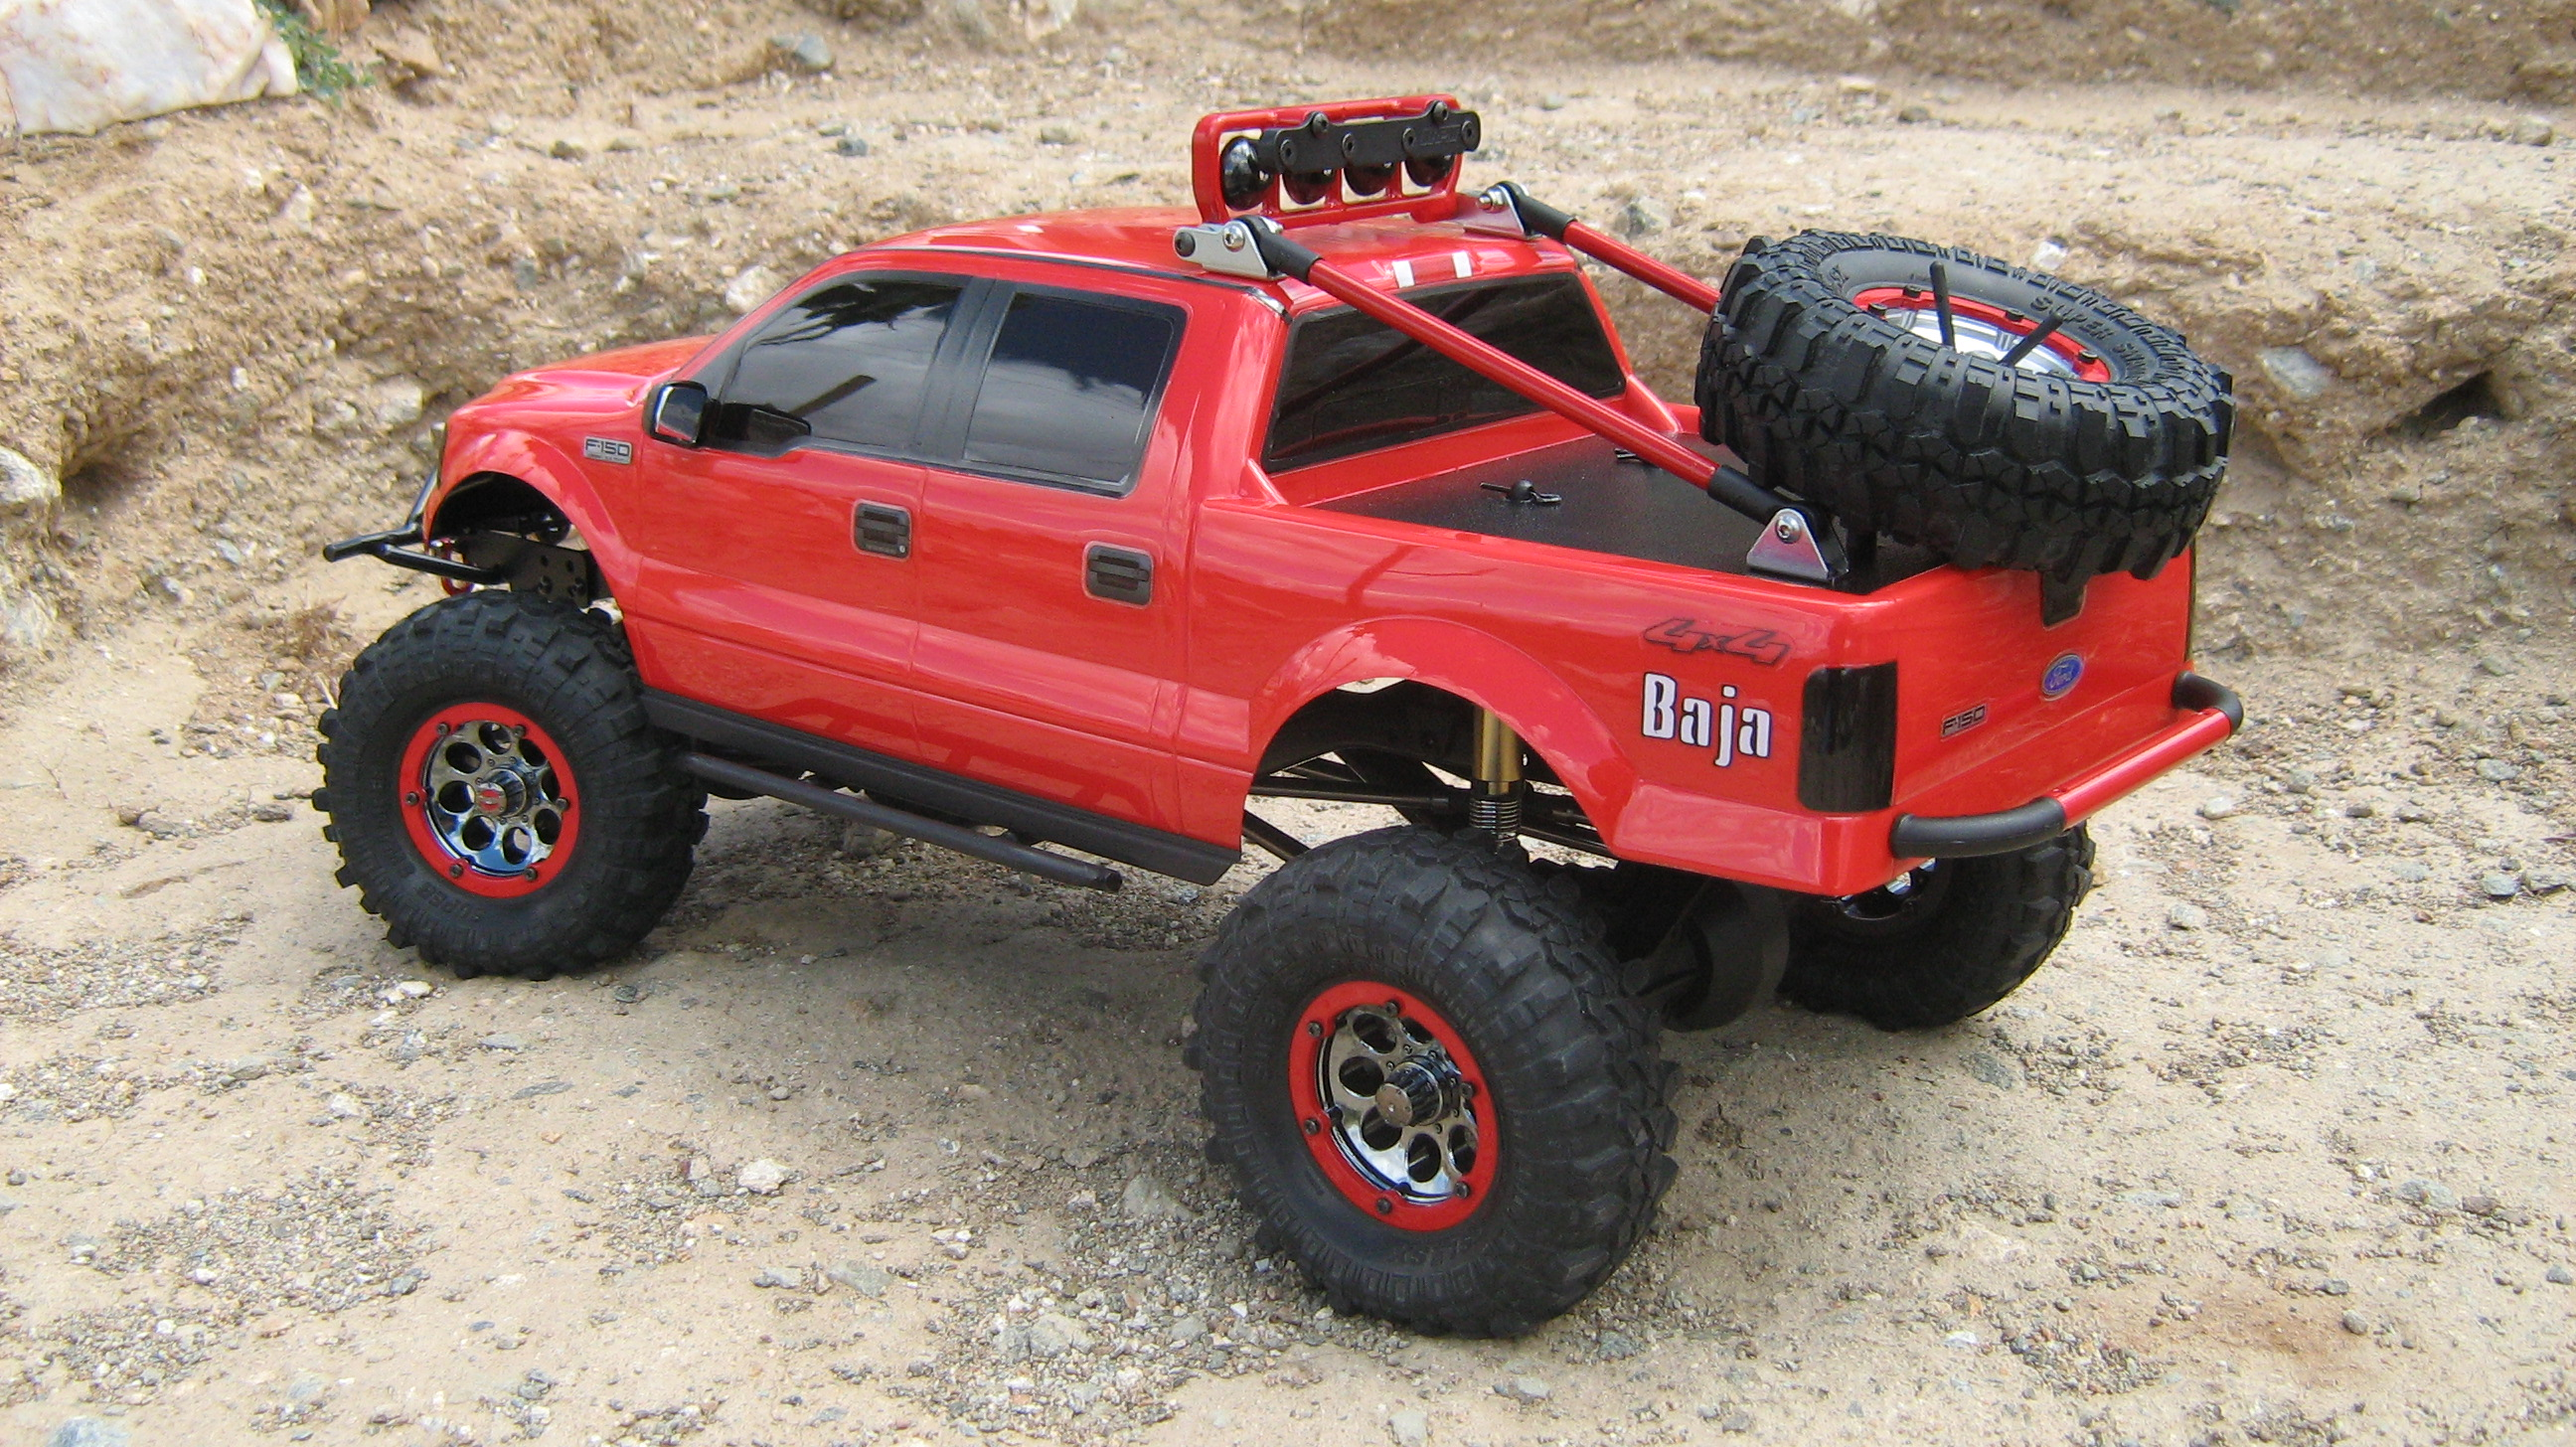 Rc Car Action >> Rc Car Action Readers Rides 8 Steps To Get In Rc Car Action